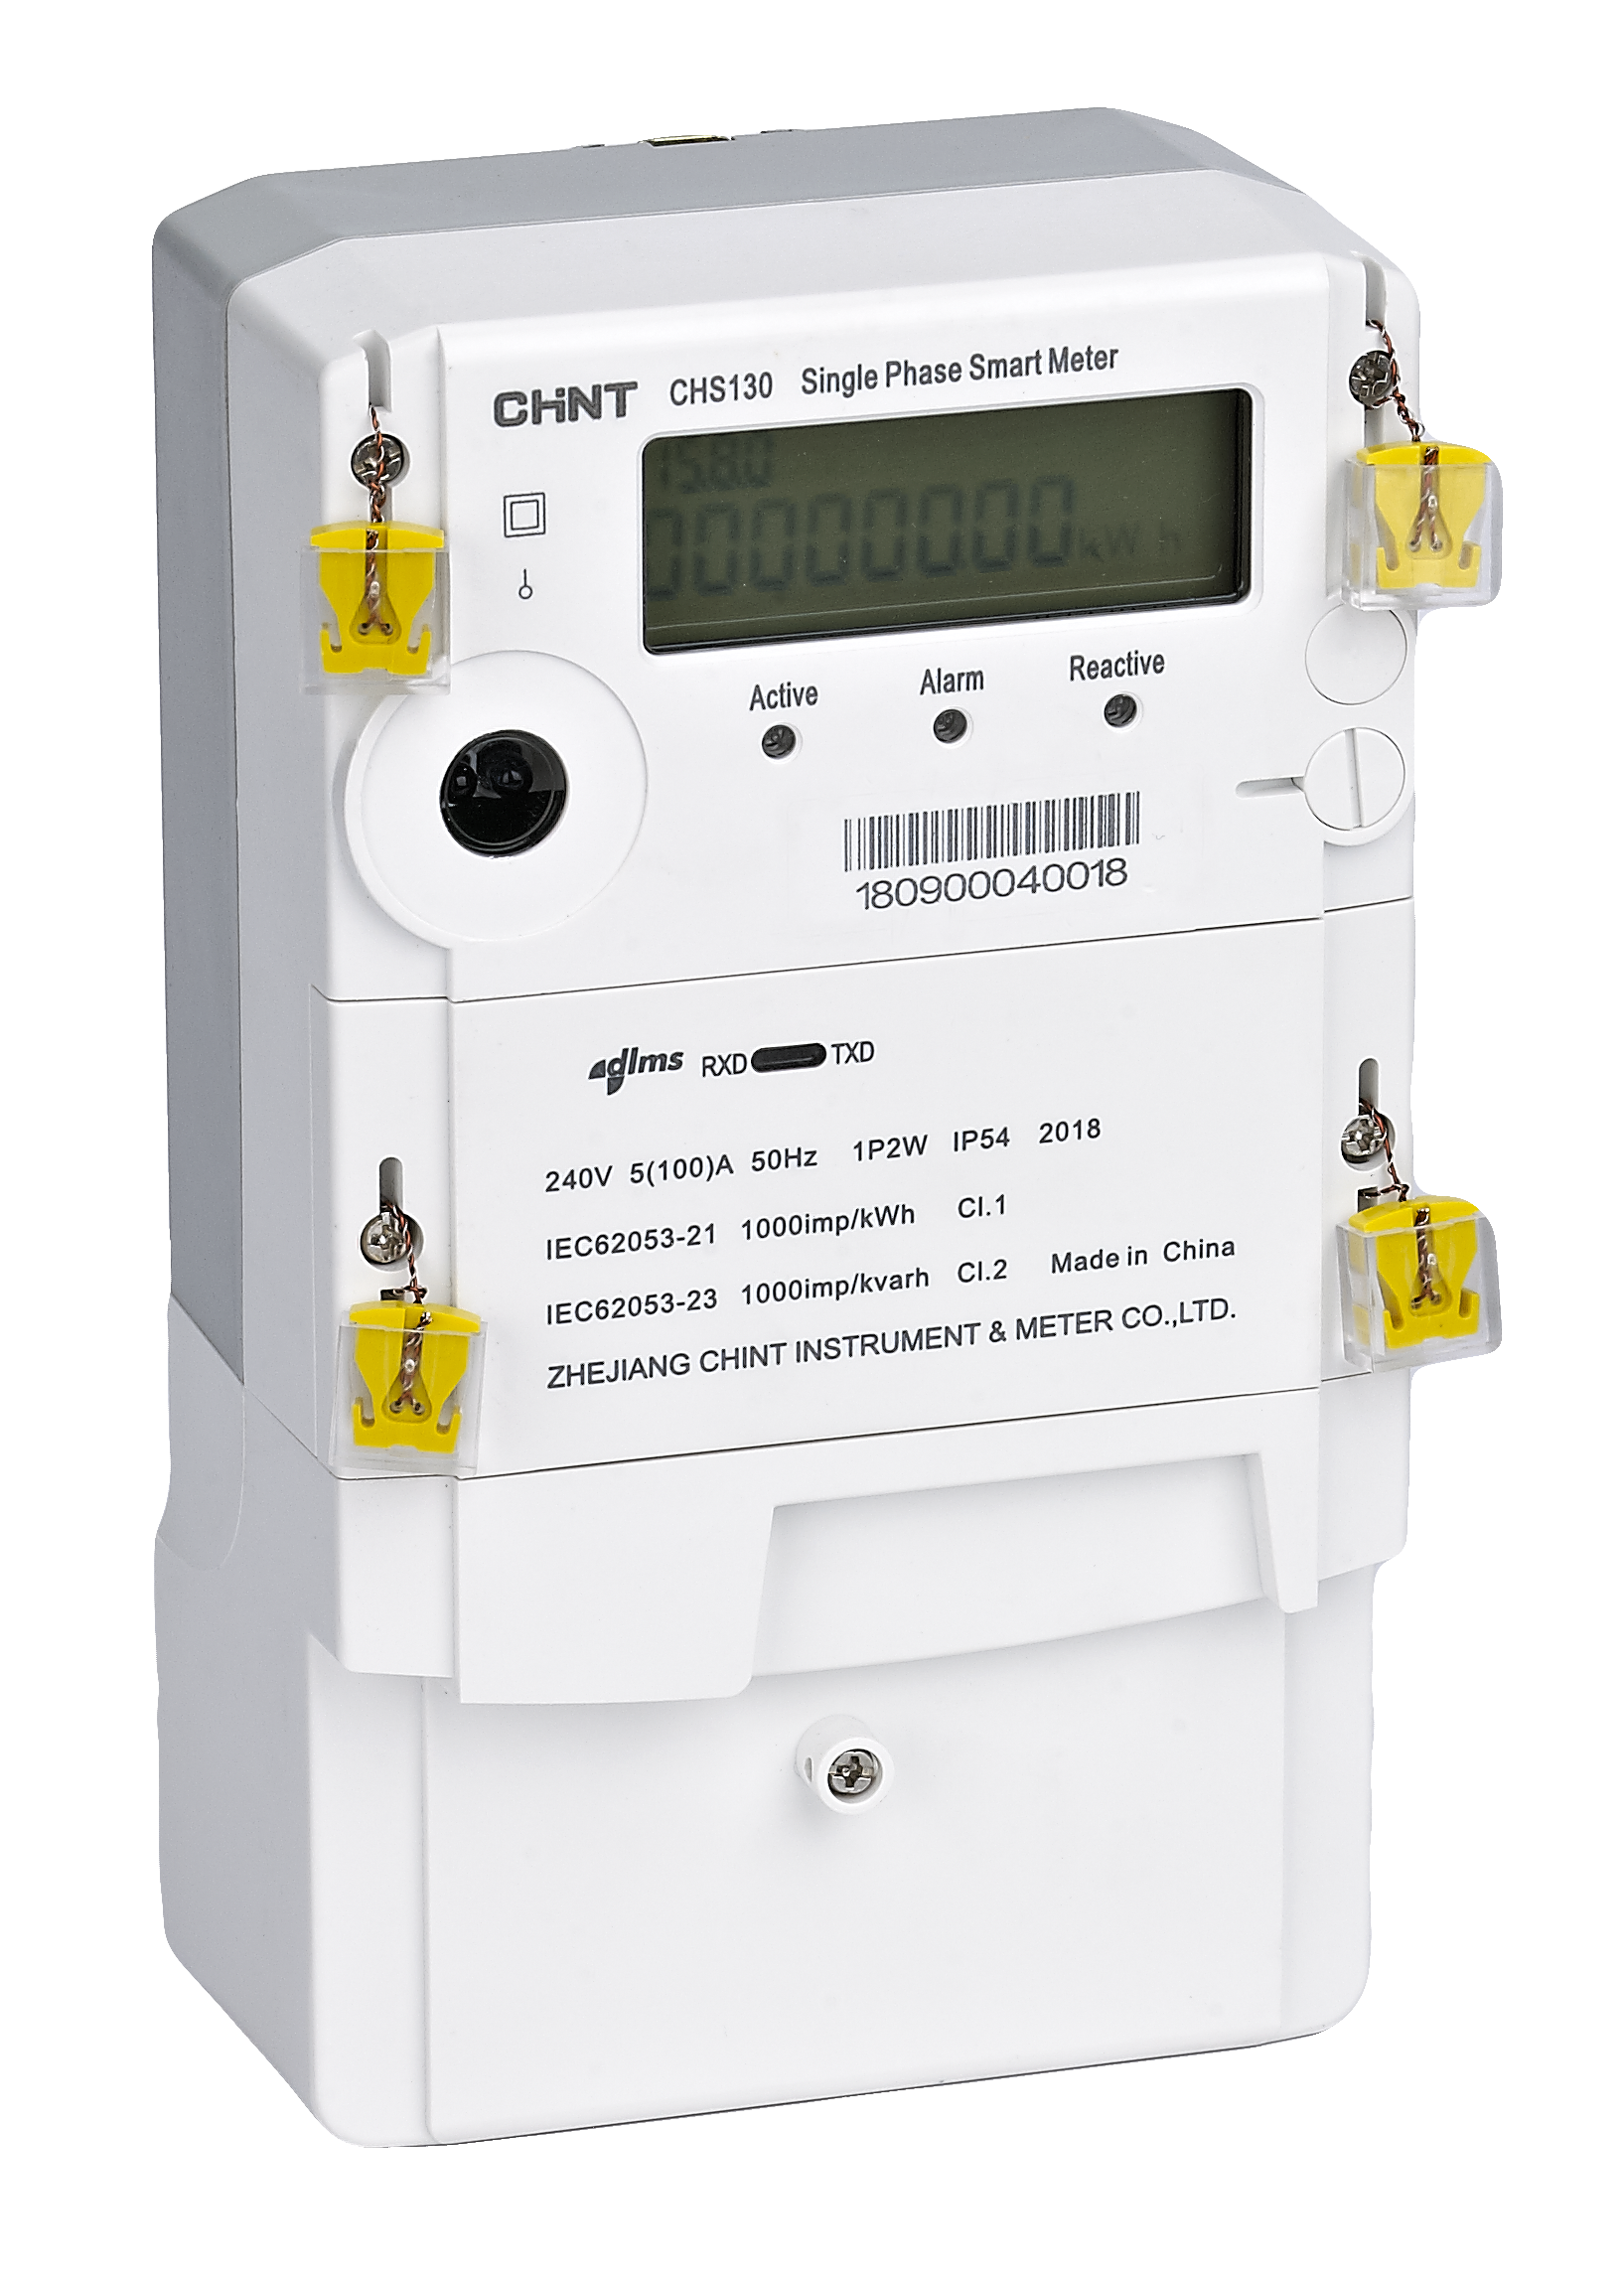 CHS130 Single Phase Smart Meter